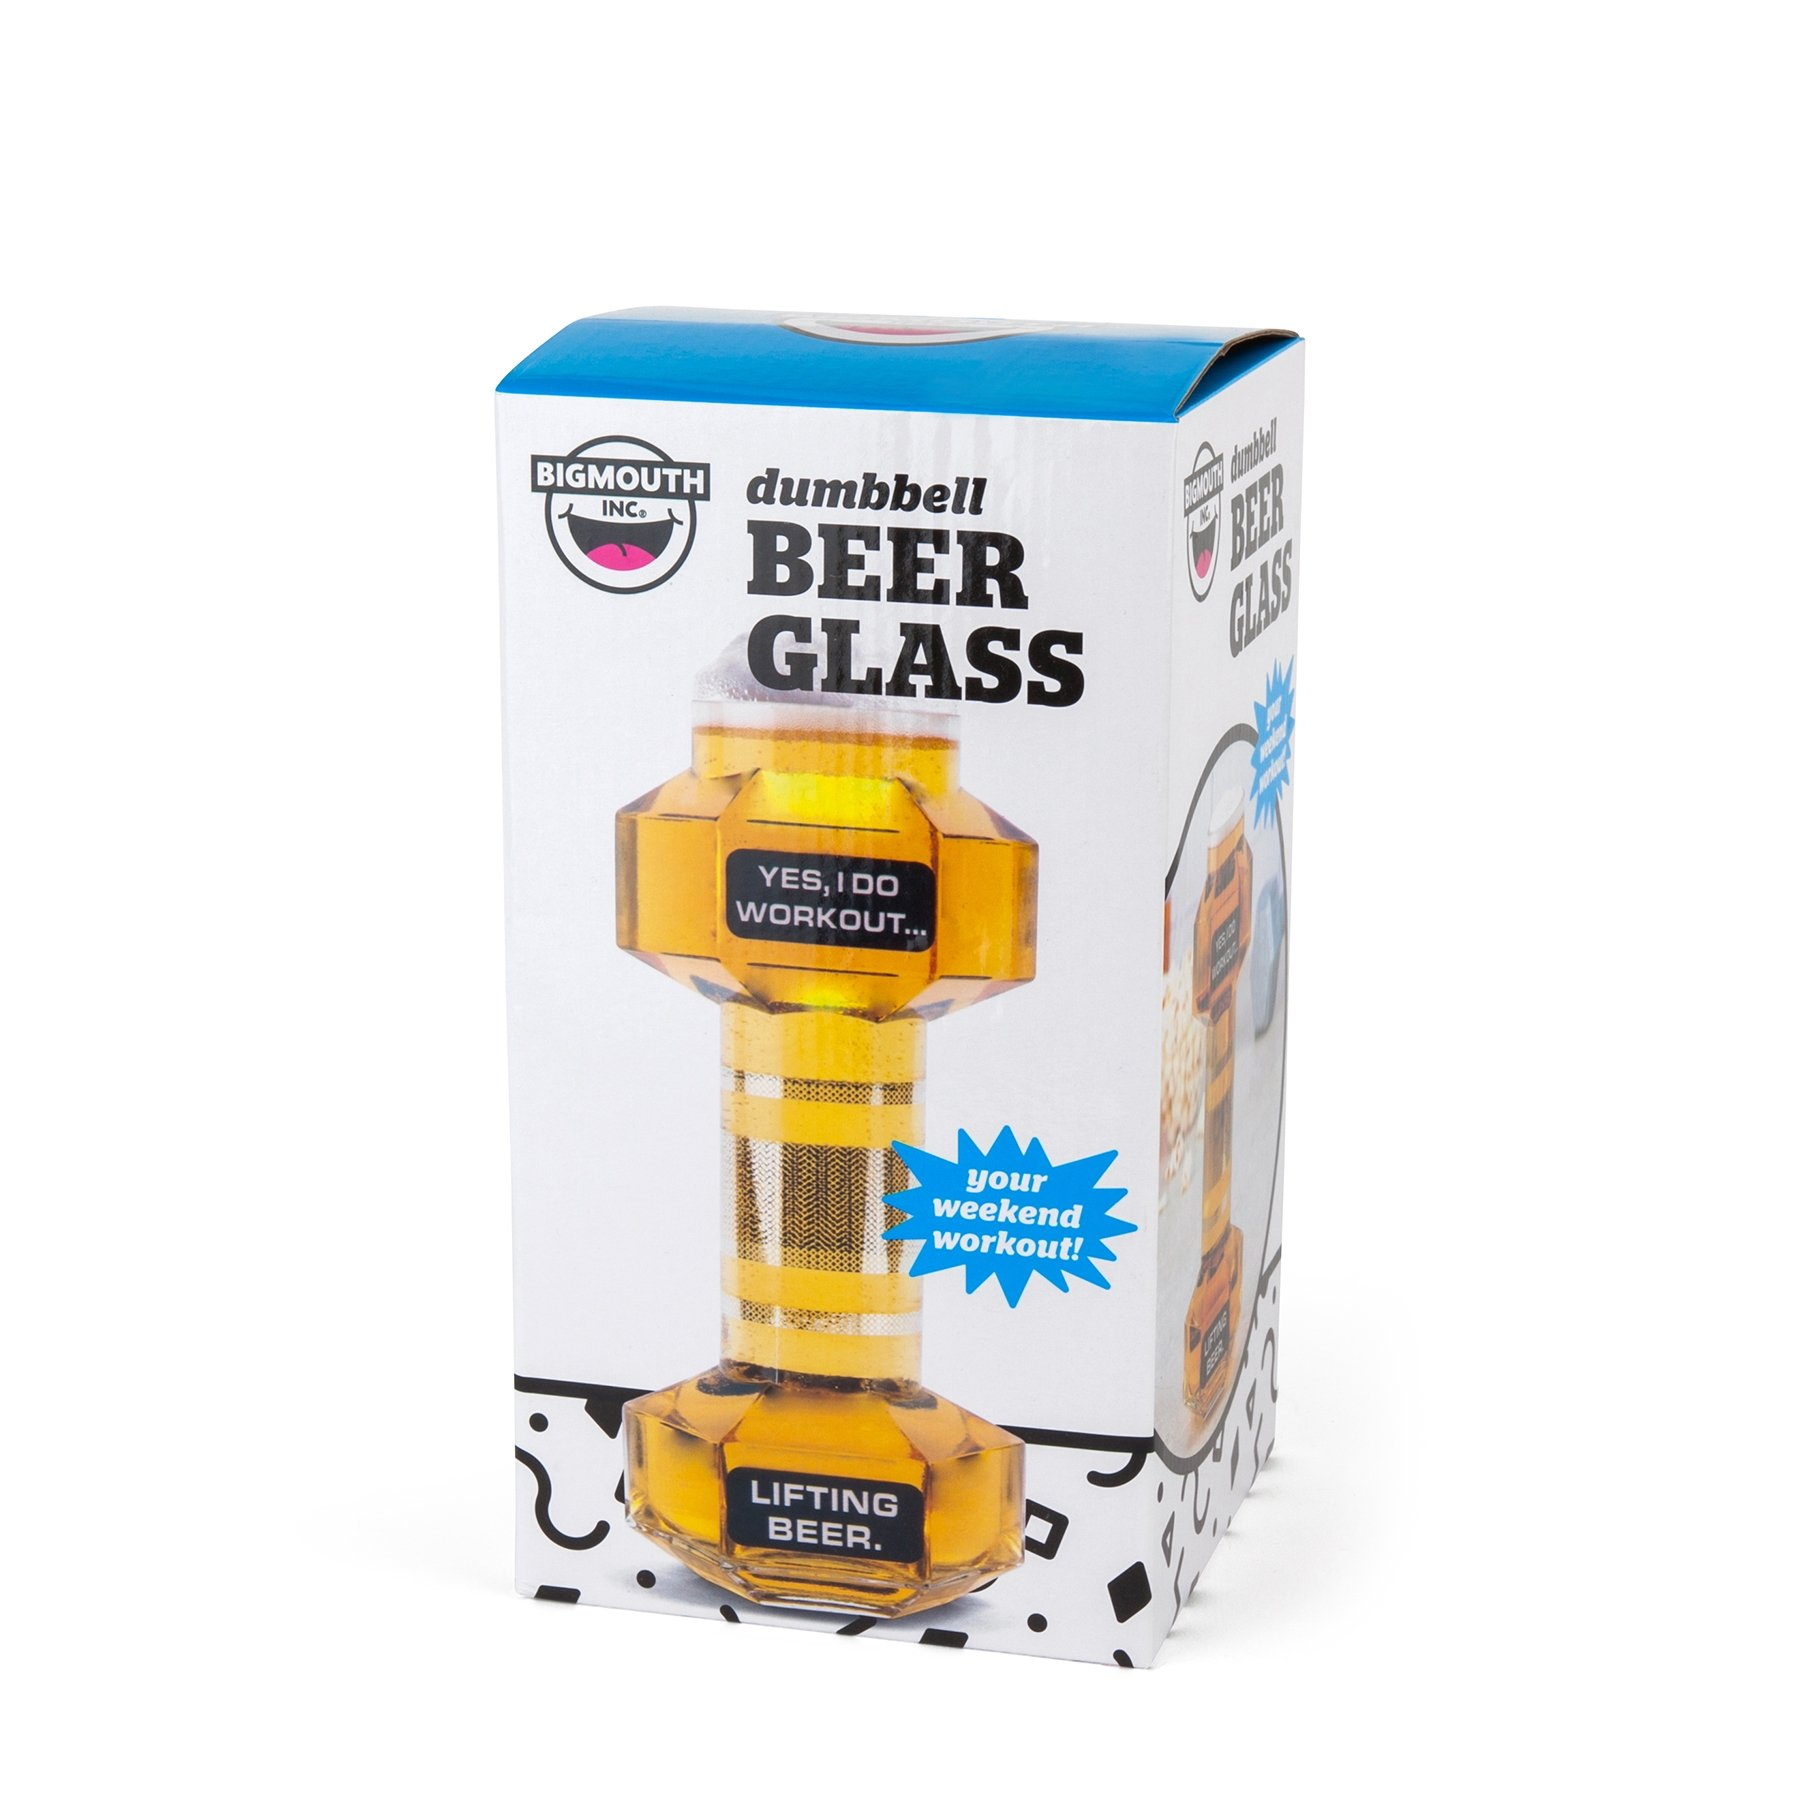 BigMouth Inc Dumbbell Beer Glass, Great Gag Gift for Weight Lifters, Exercise Fanatics, Made of Glass by BigMouth Inc (Image #2)